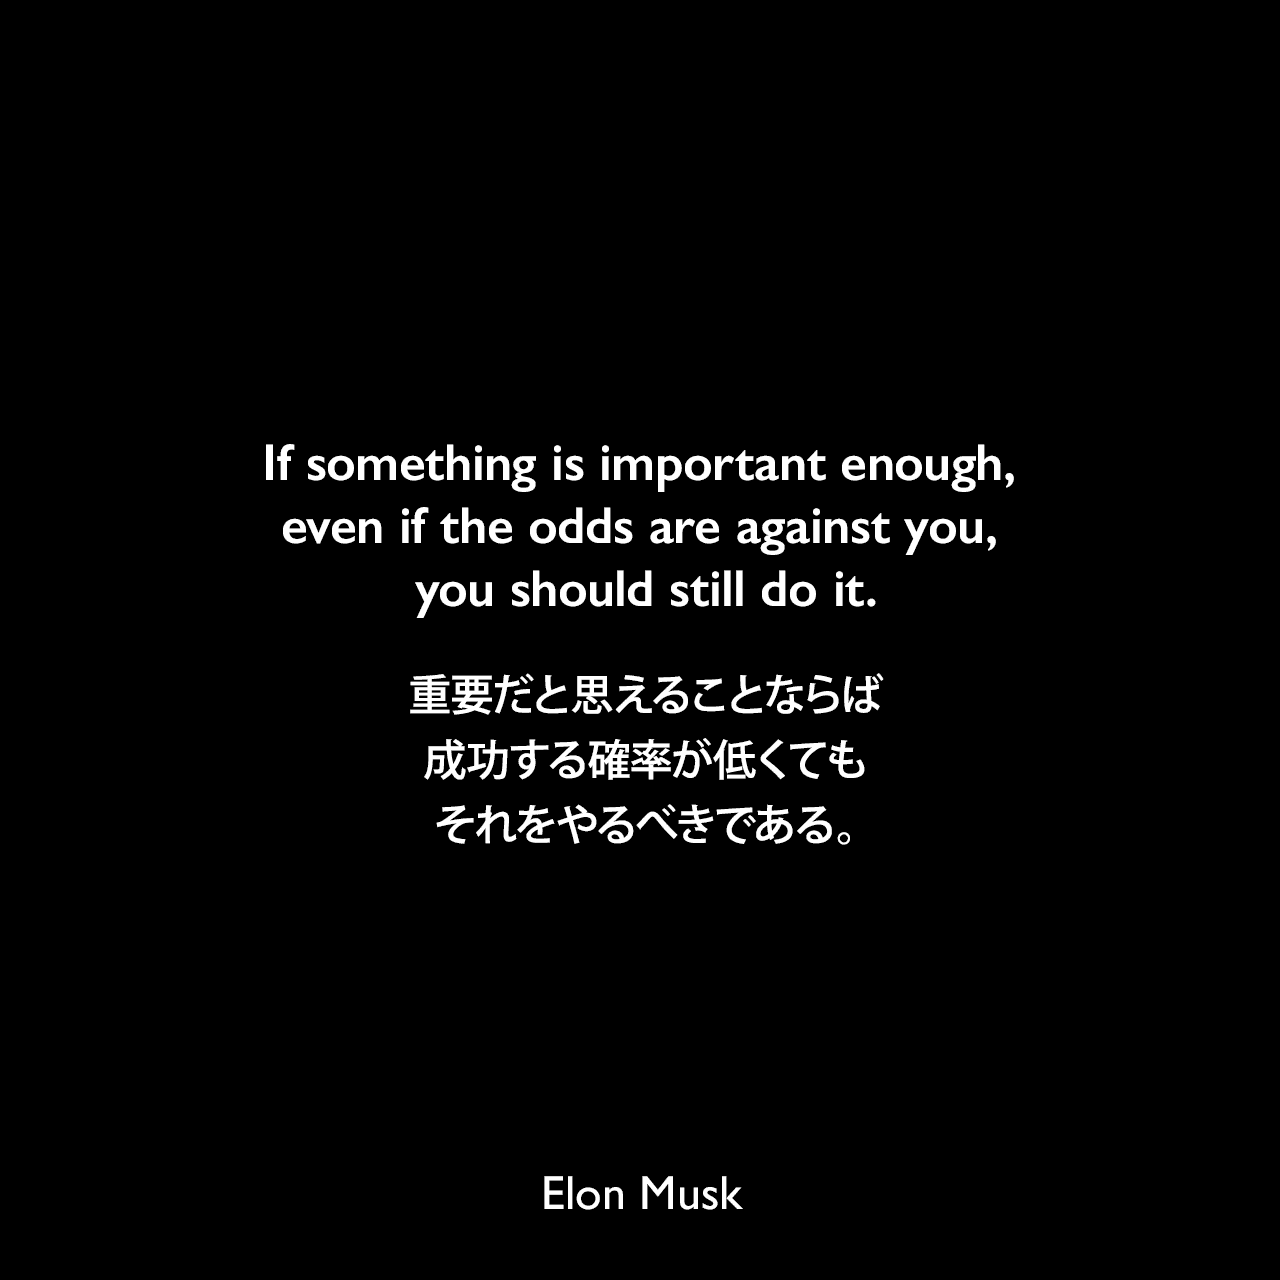 If something is important enough, even if the odds are against you, you should still do it.重要だと思えることならば、成功する確率が低くてもそれをやるべきである。- 2012年3月のCBSのドキュメンタリー番組「60 Minutes」よりElon Musk